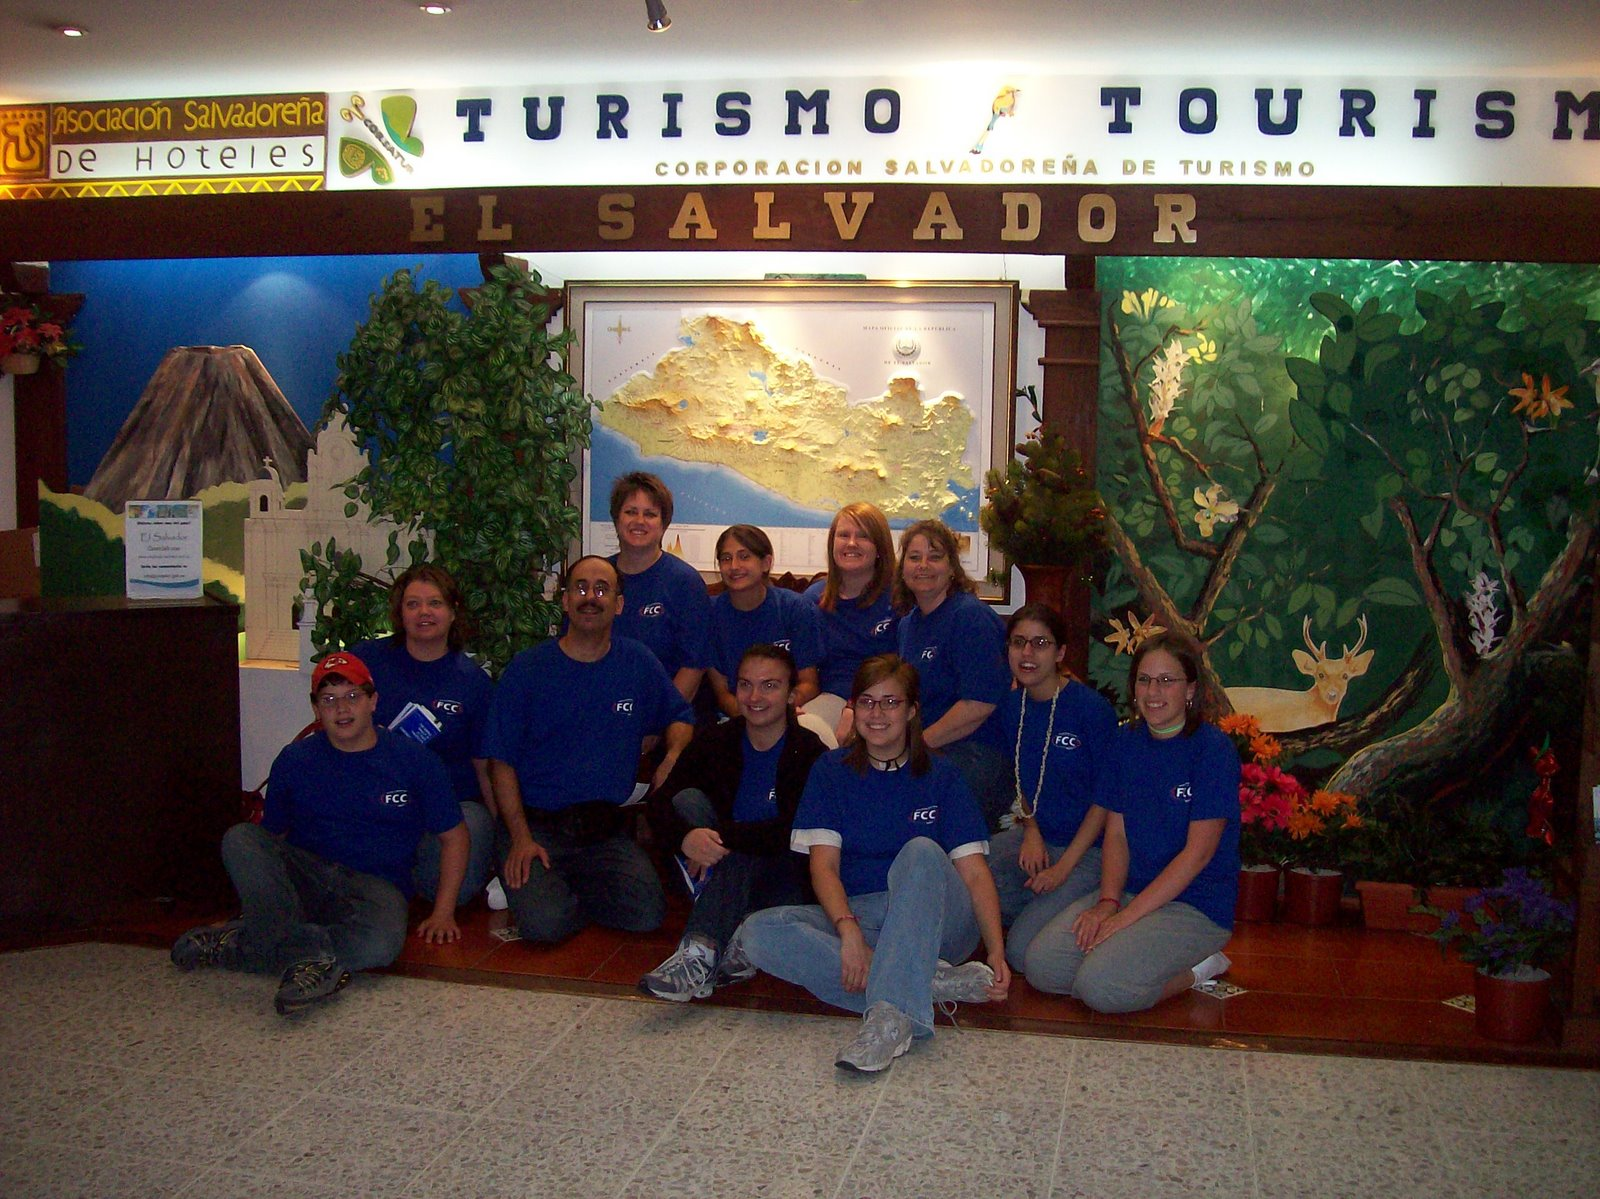 El Salvador Team